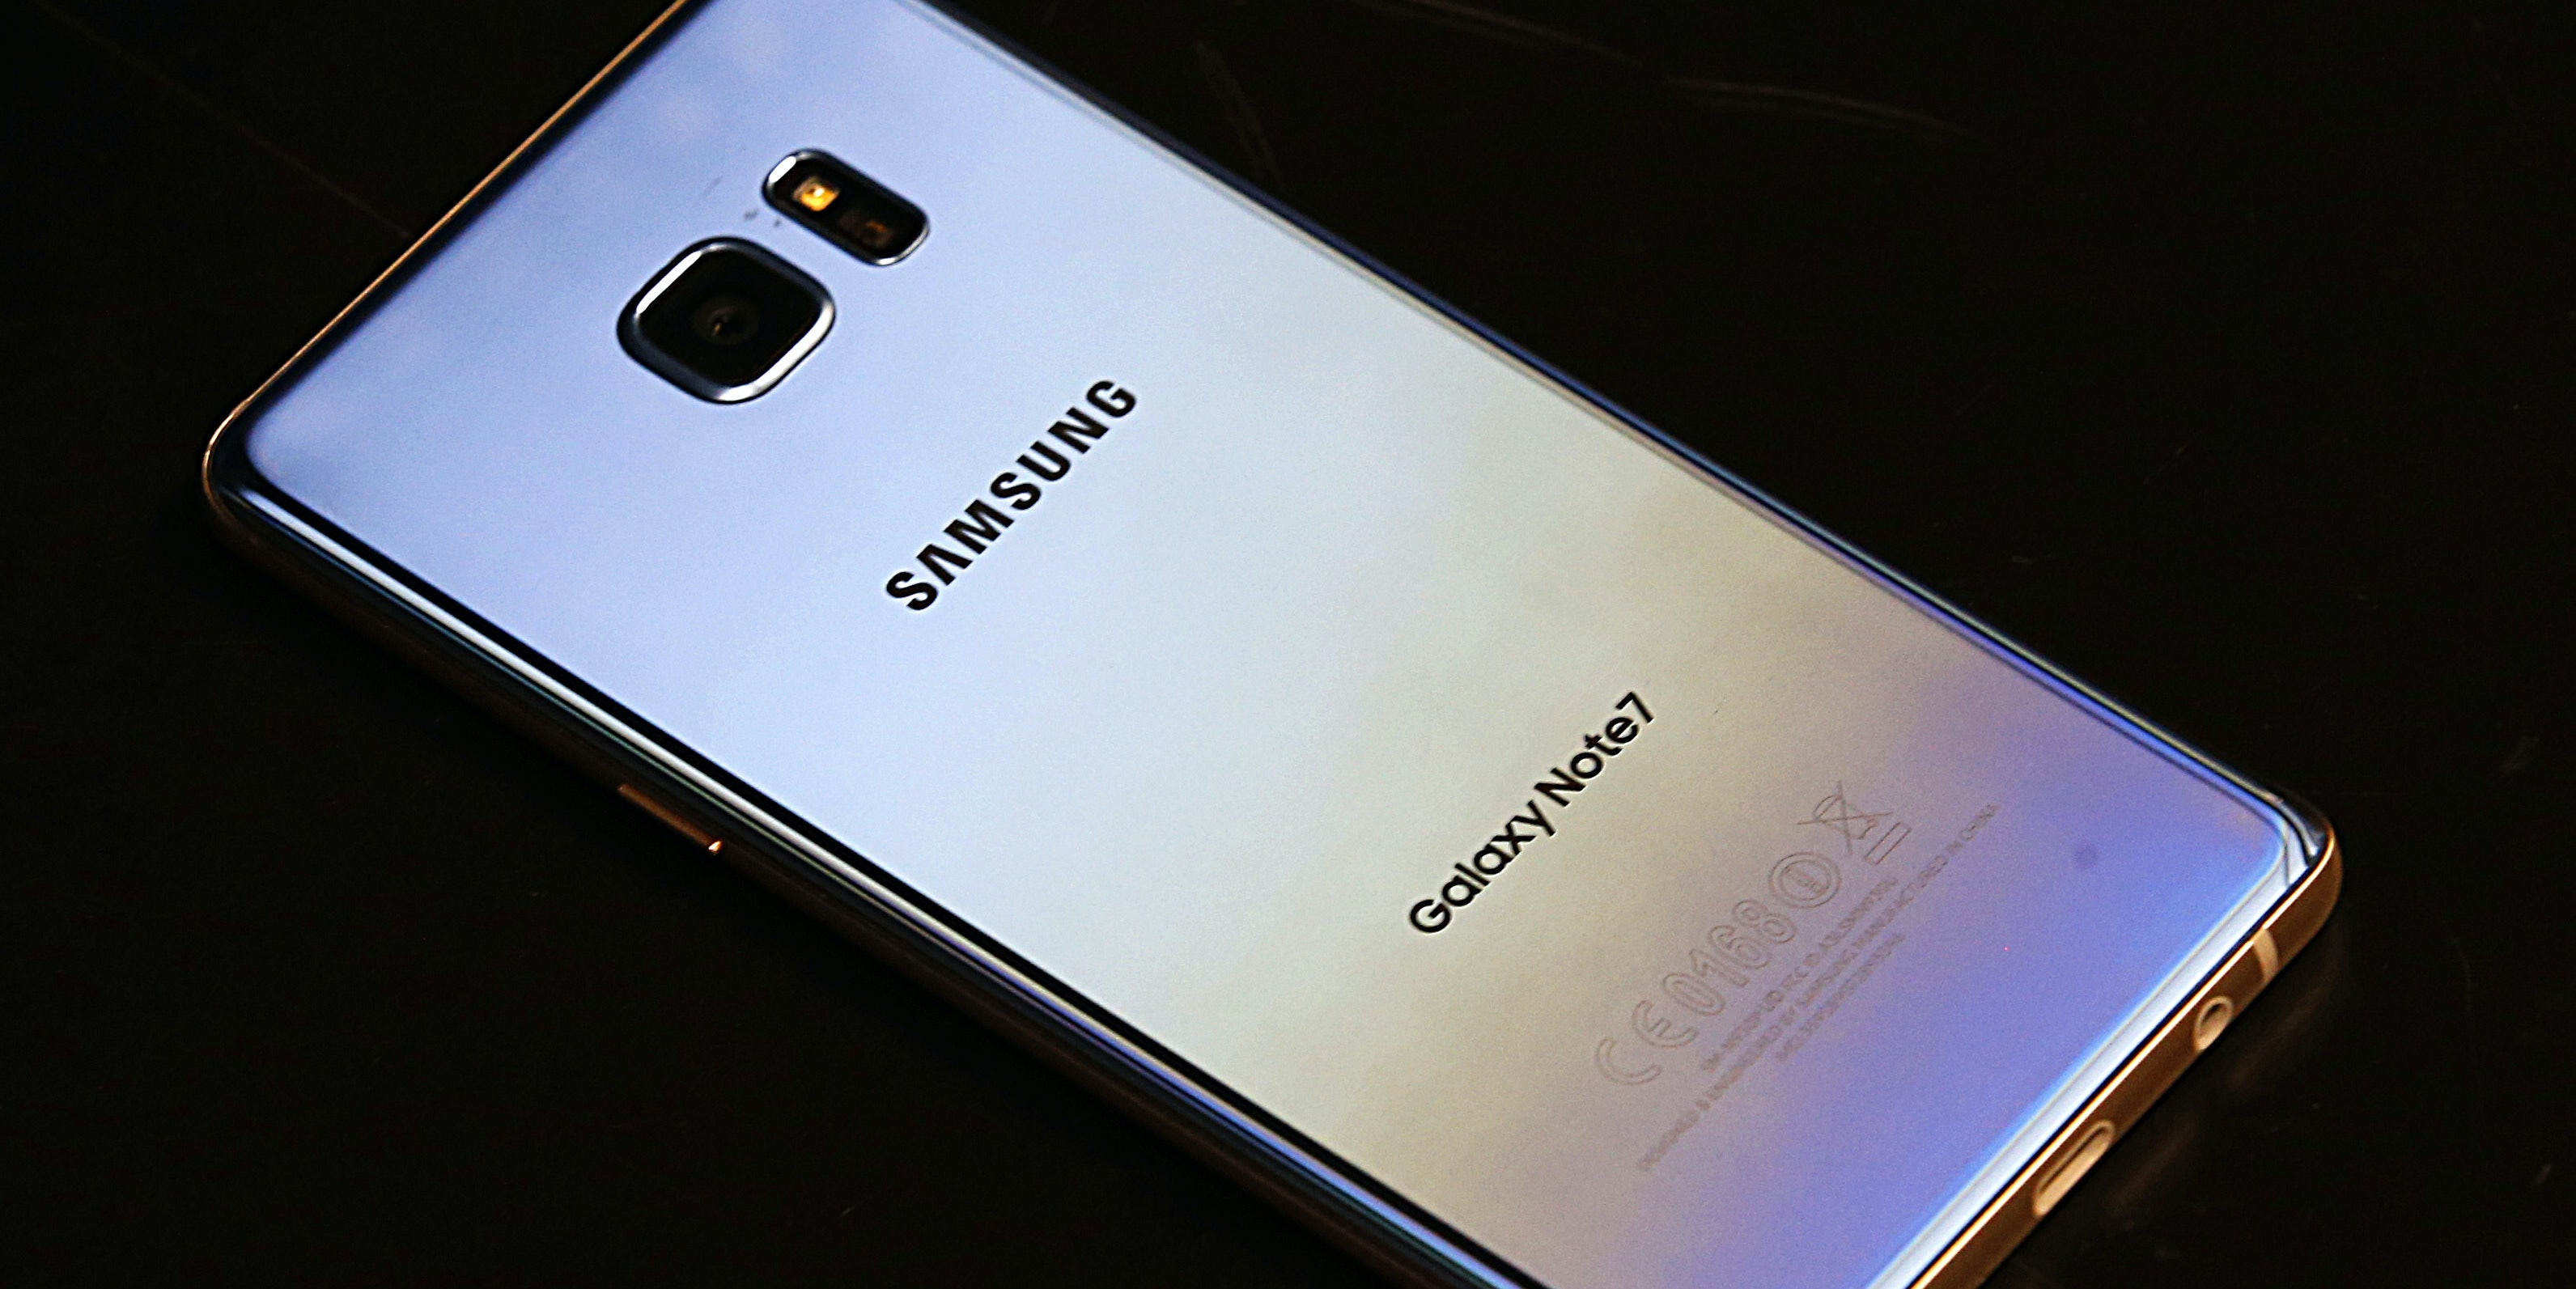 OREM, UT - SEPTEMBER 15: A Samsung Galaxy Note 7 lays on a counter after it was retuned to a Best Buy on September 15, 2016 in Orem, Utah.  The Consumer Safety Commission announced today a safety recall on Samsung's new Galaxy Note 7 smartphone after users reported that some of the devices caught fire when charging.  (Photo by George Frey/Getty Images)